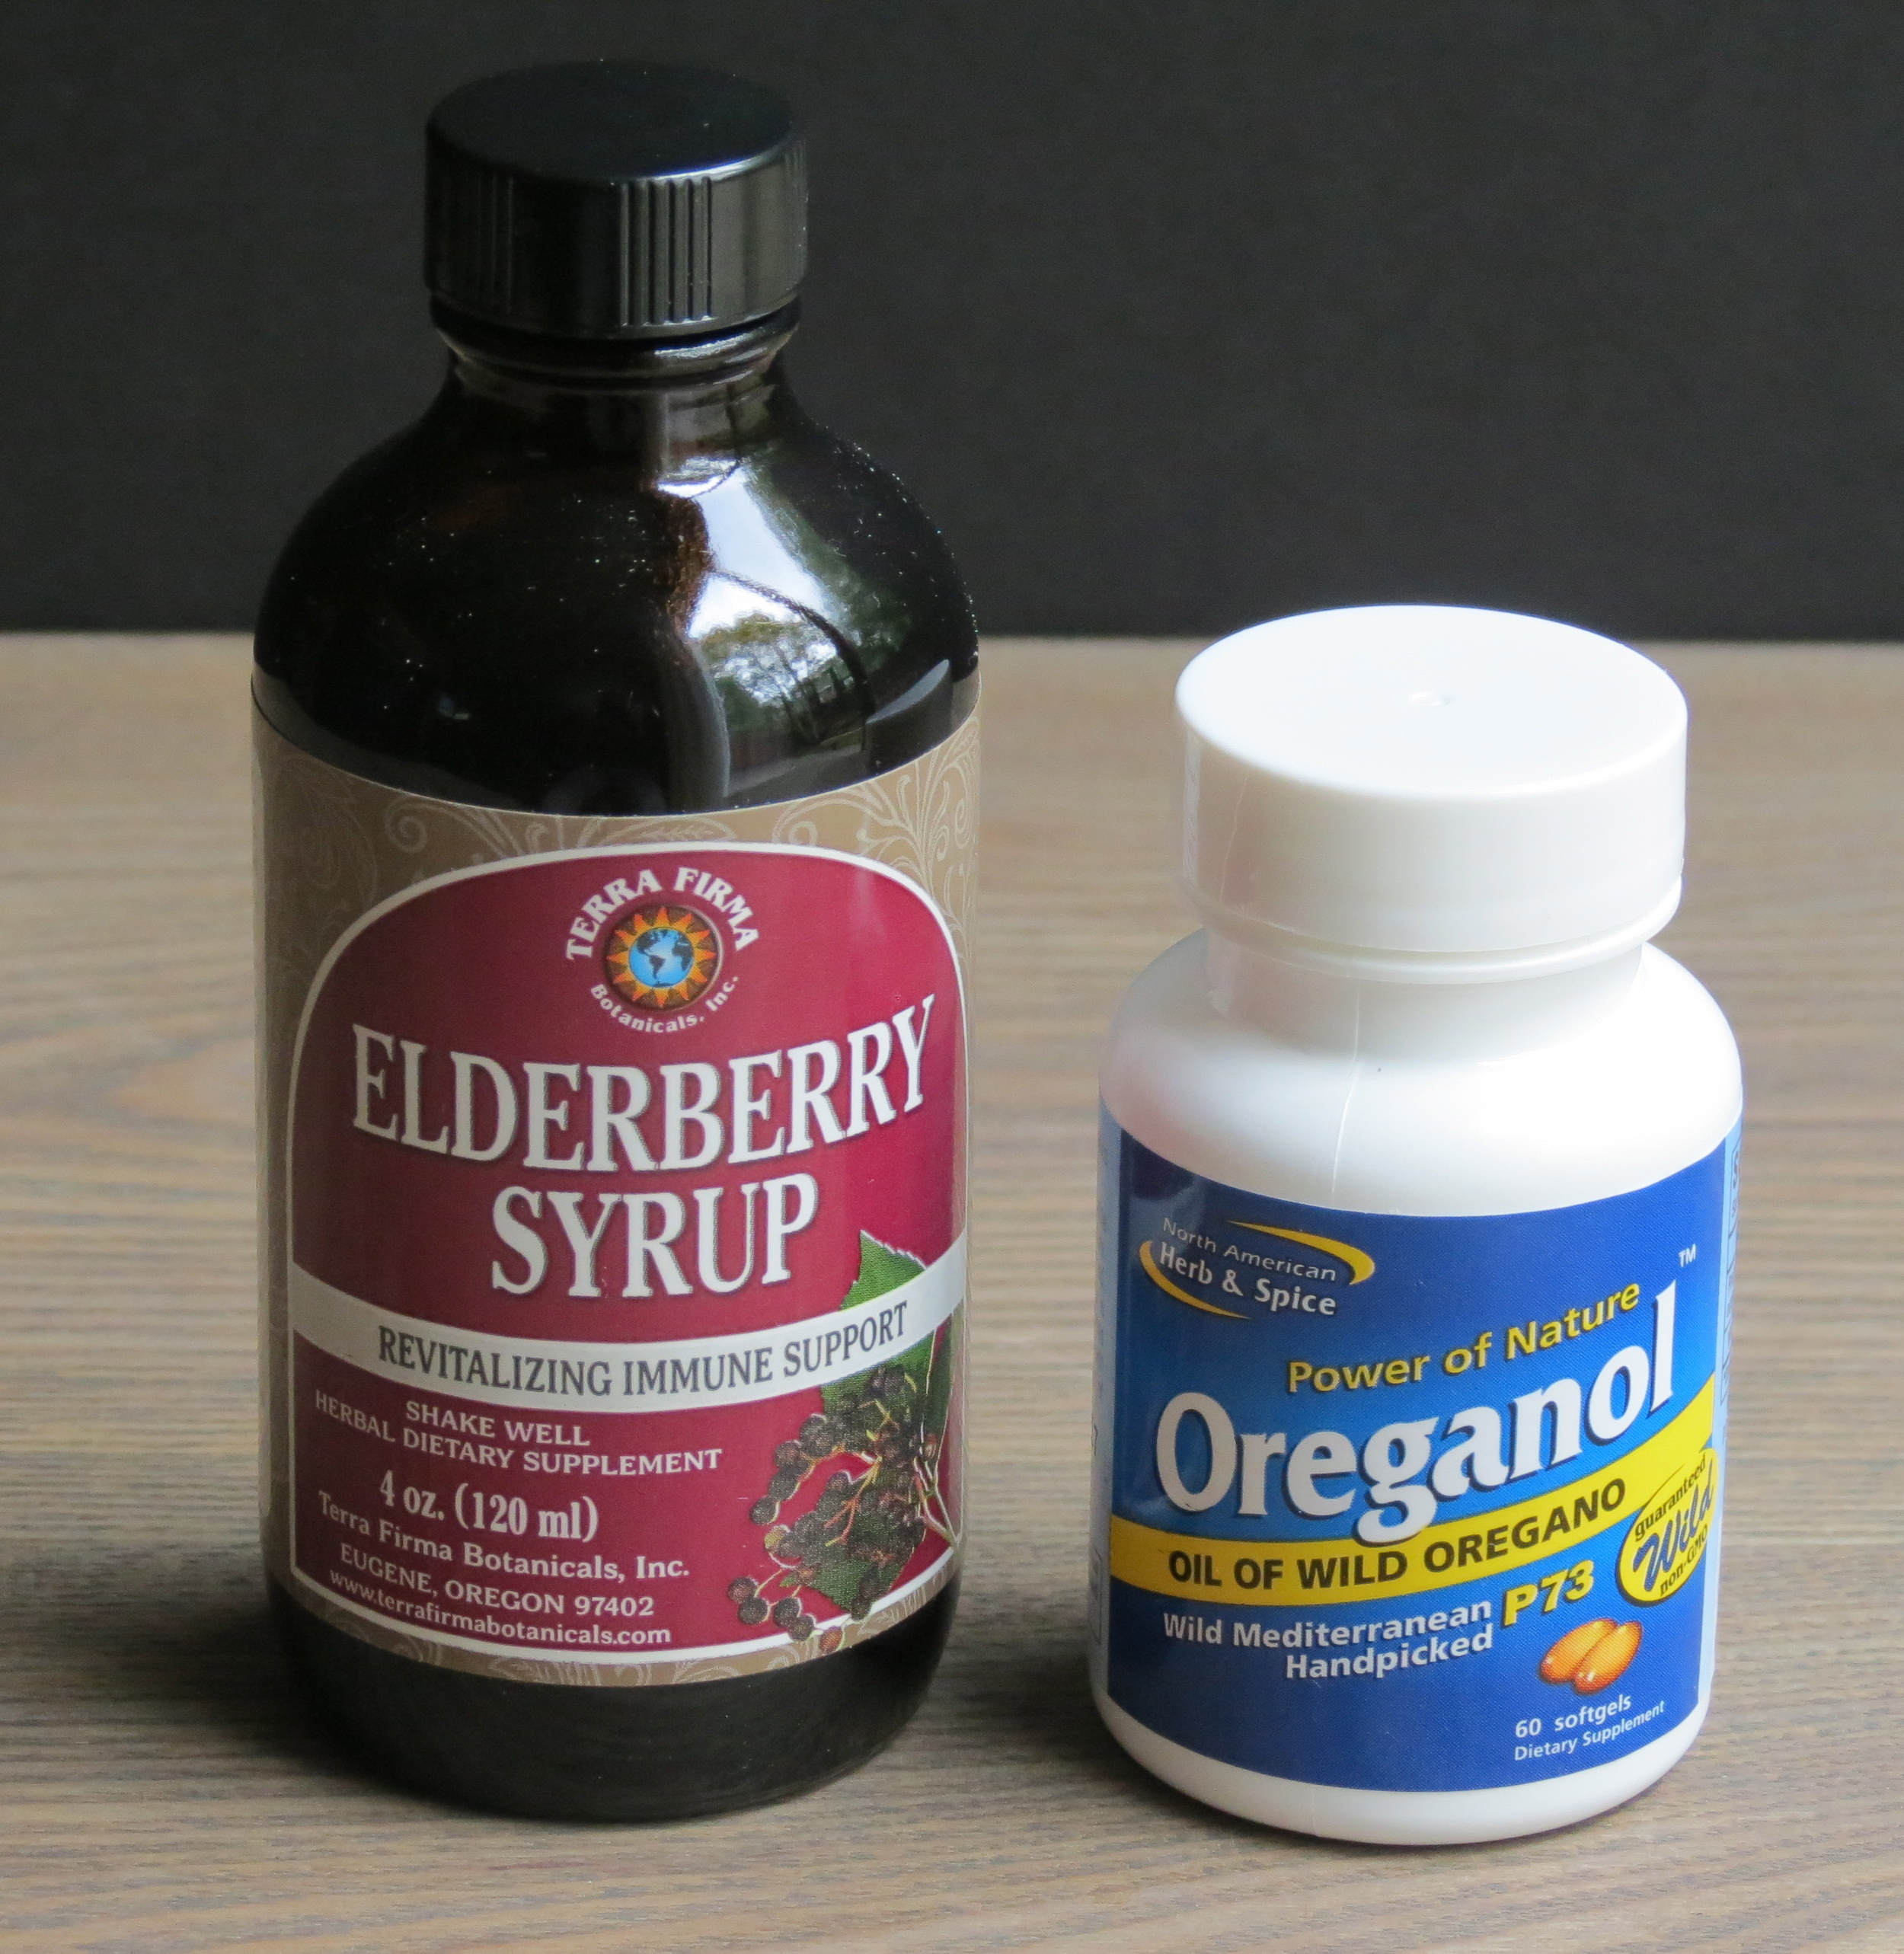 These are two great options if sickness occurs.